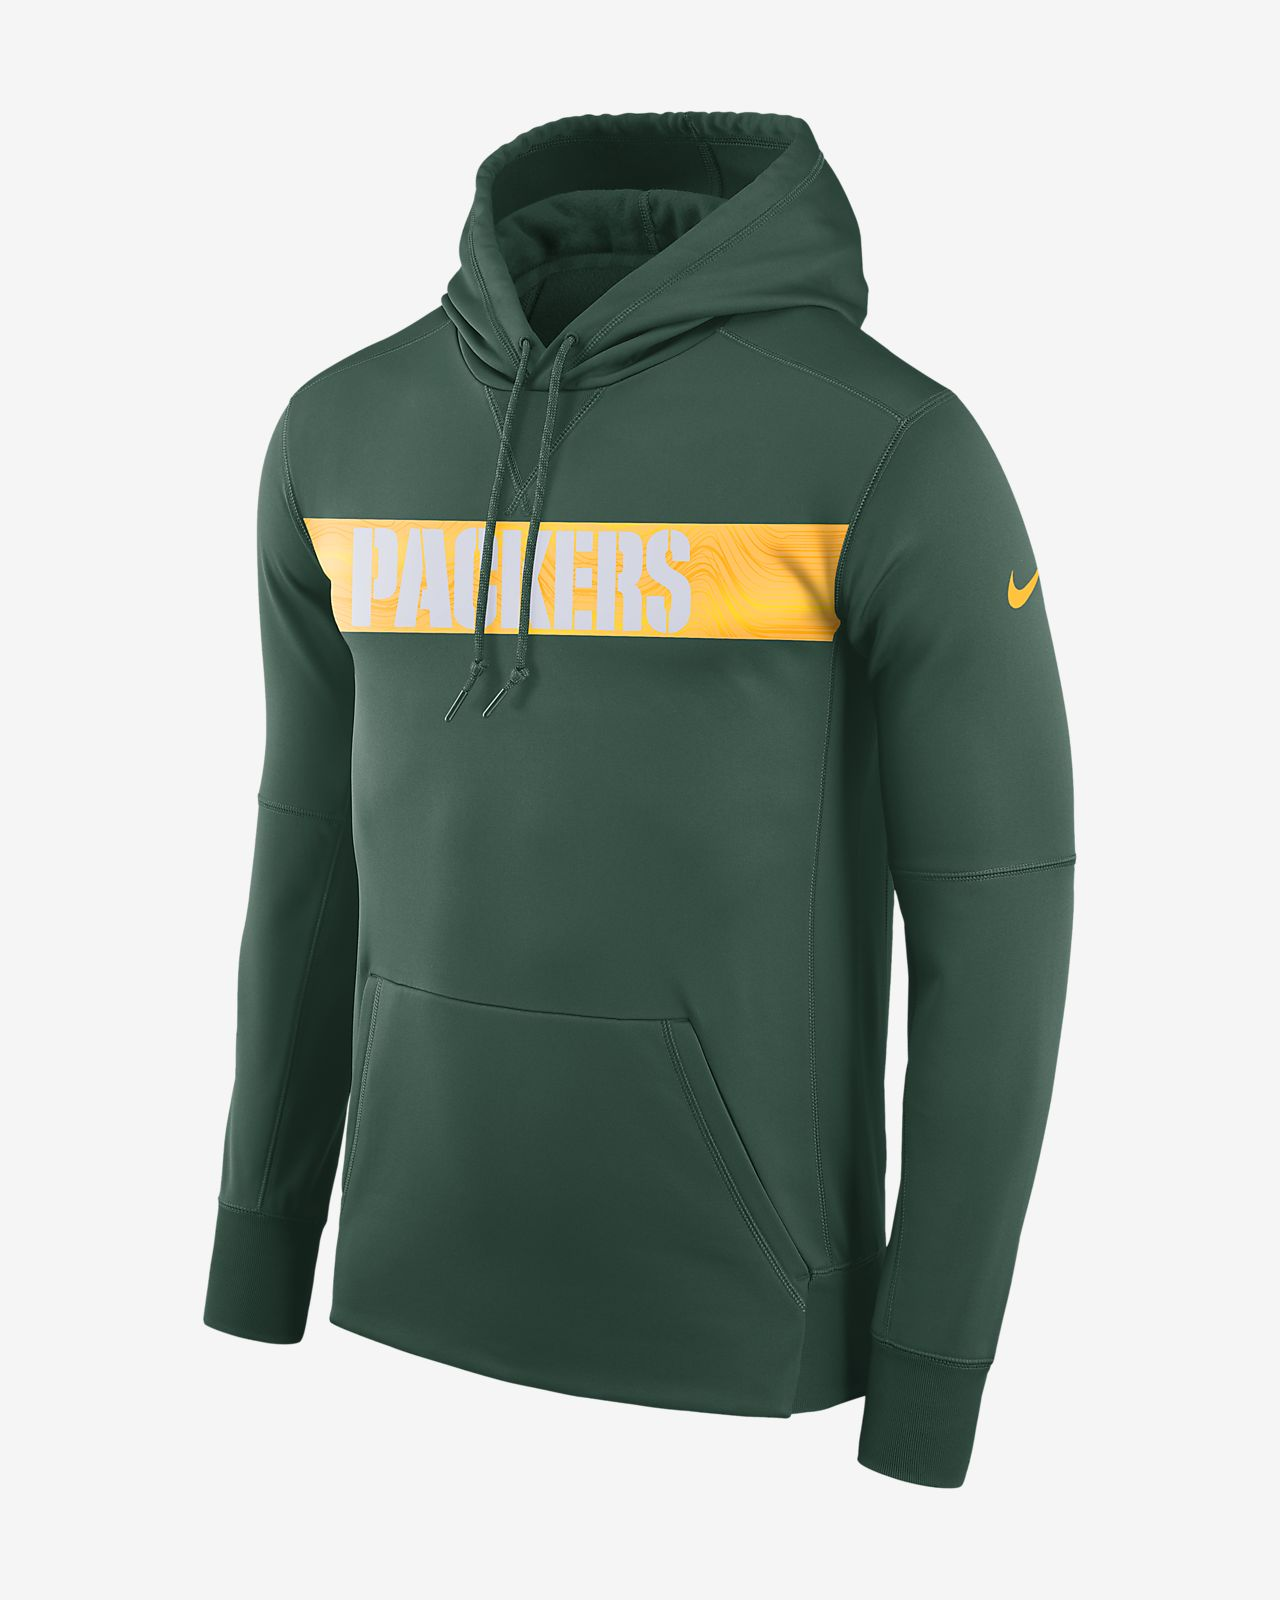 Nike Dri-FIT Therma (NFL Packers) Sudadera con capucha - Hombre